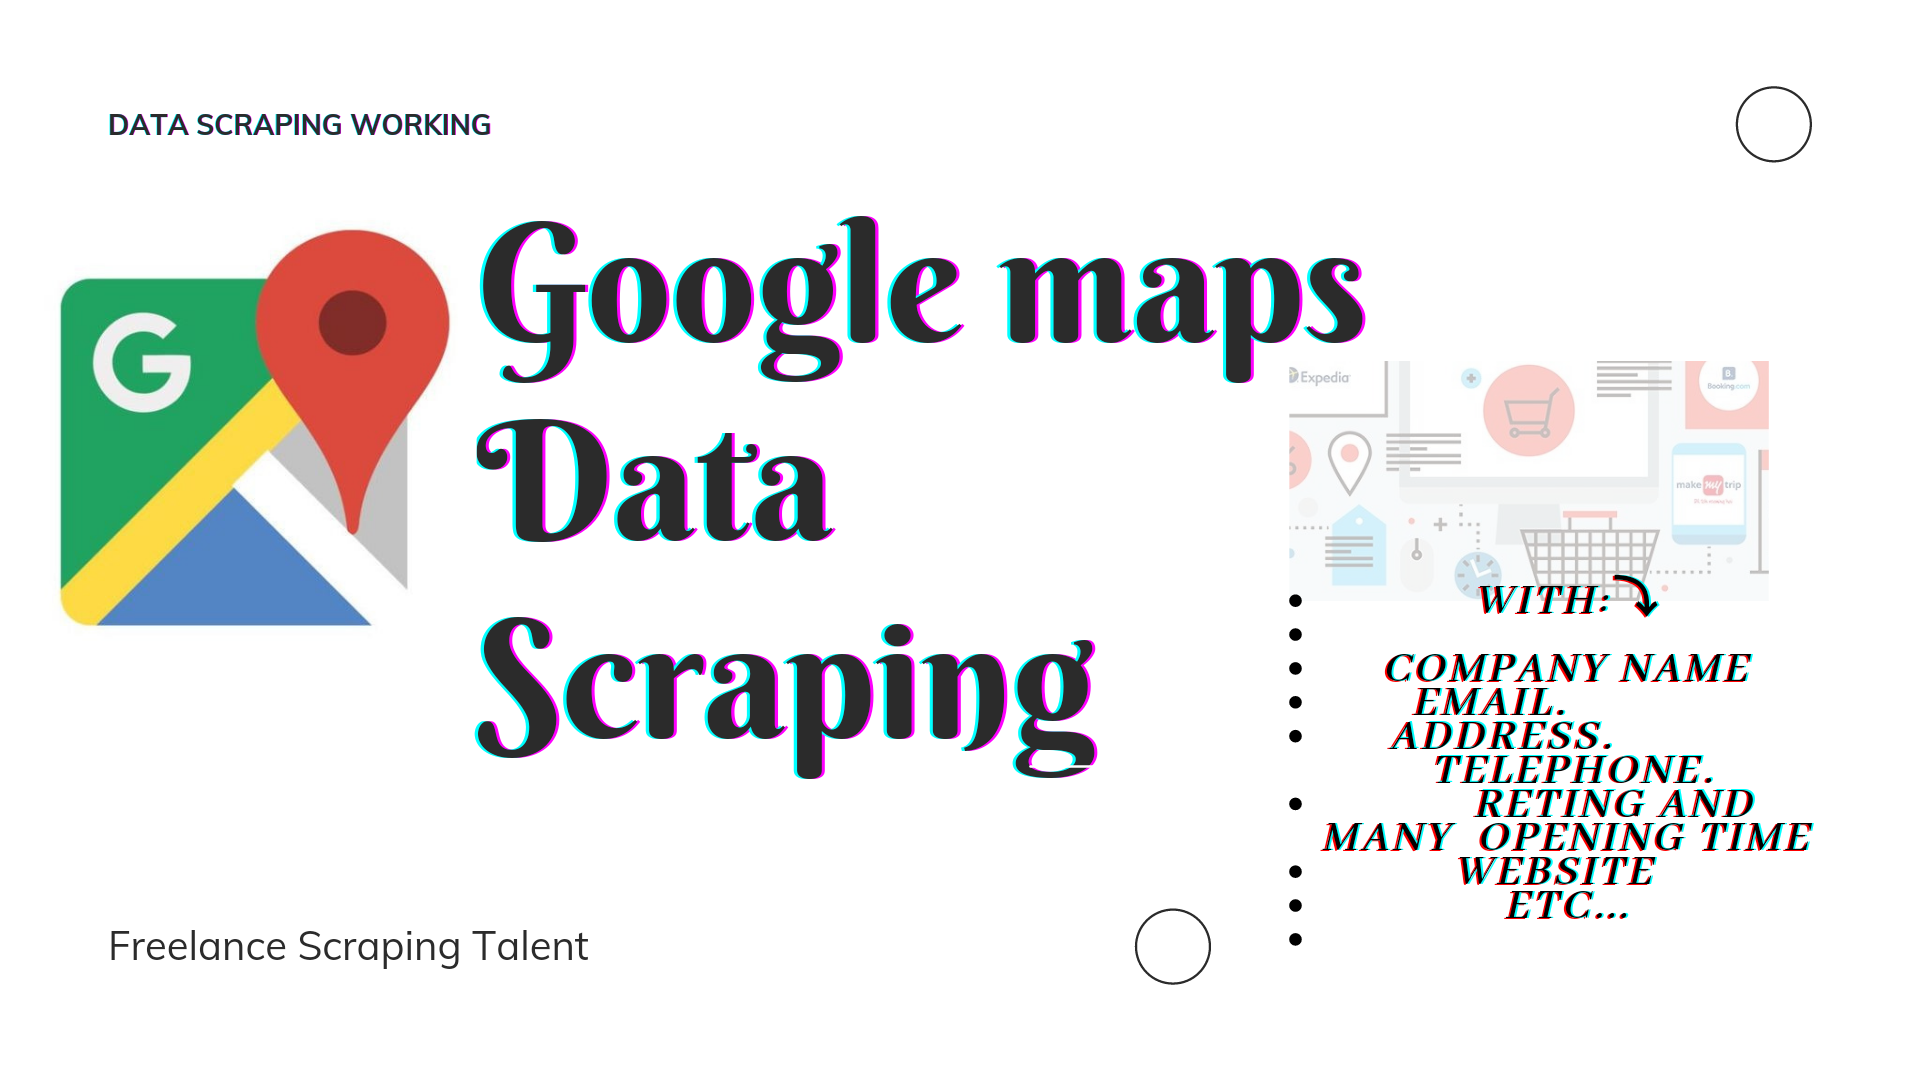 I will scrap data from Google Maps